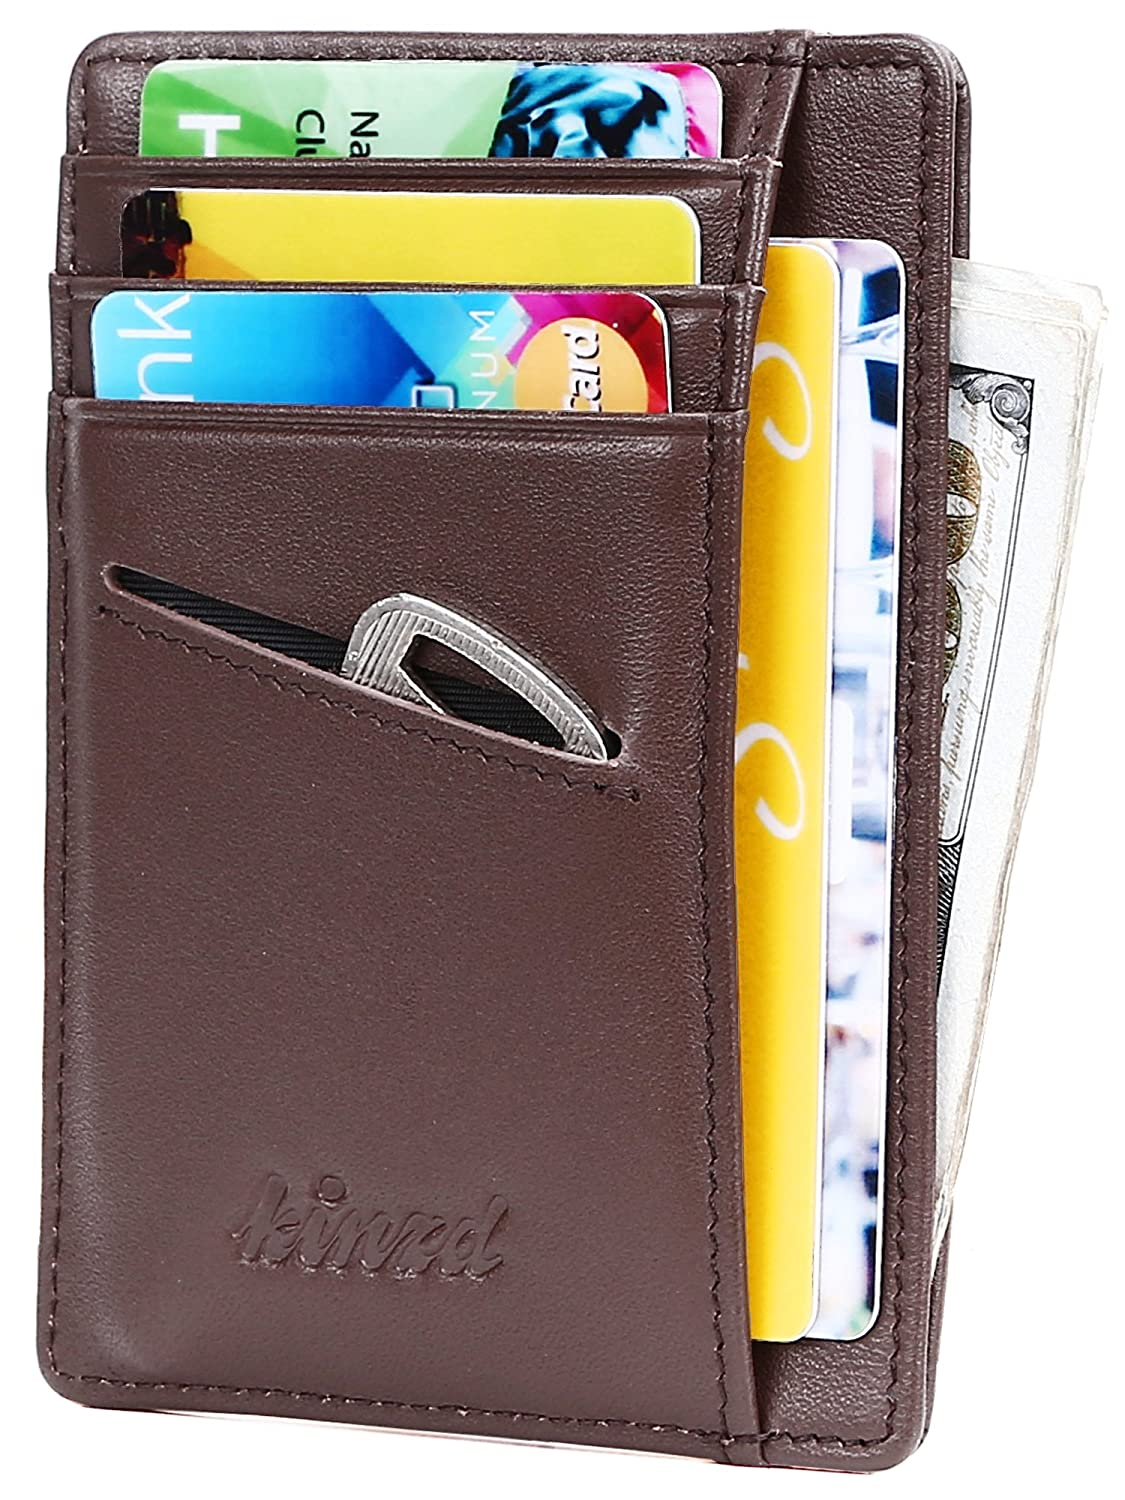 Slim Wallet RFID Front Pocket Wallet Minimalist Secure Thin Credit Card Holder (One Size, Z Double Side Crazy Dark Blue) AS200-E